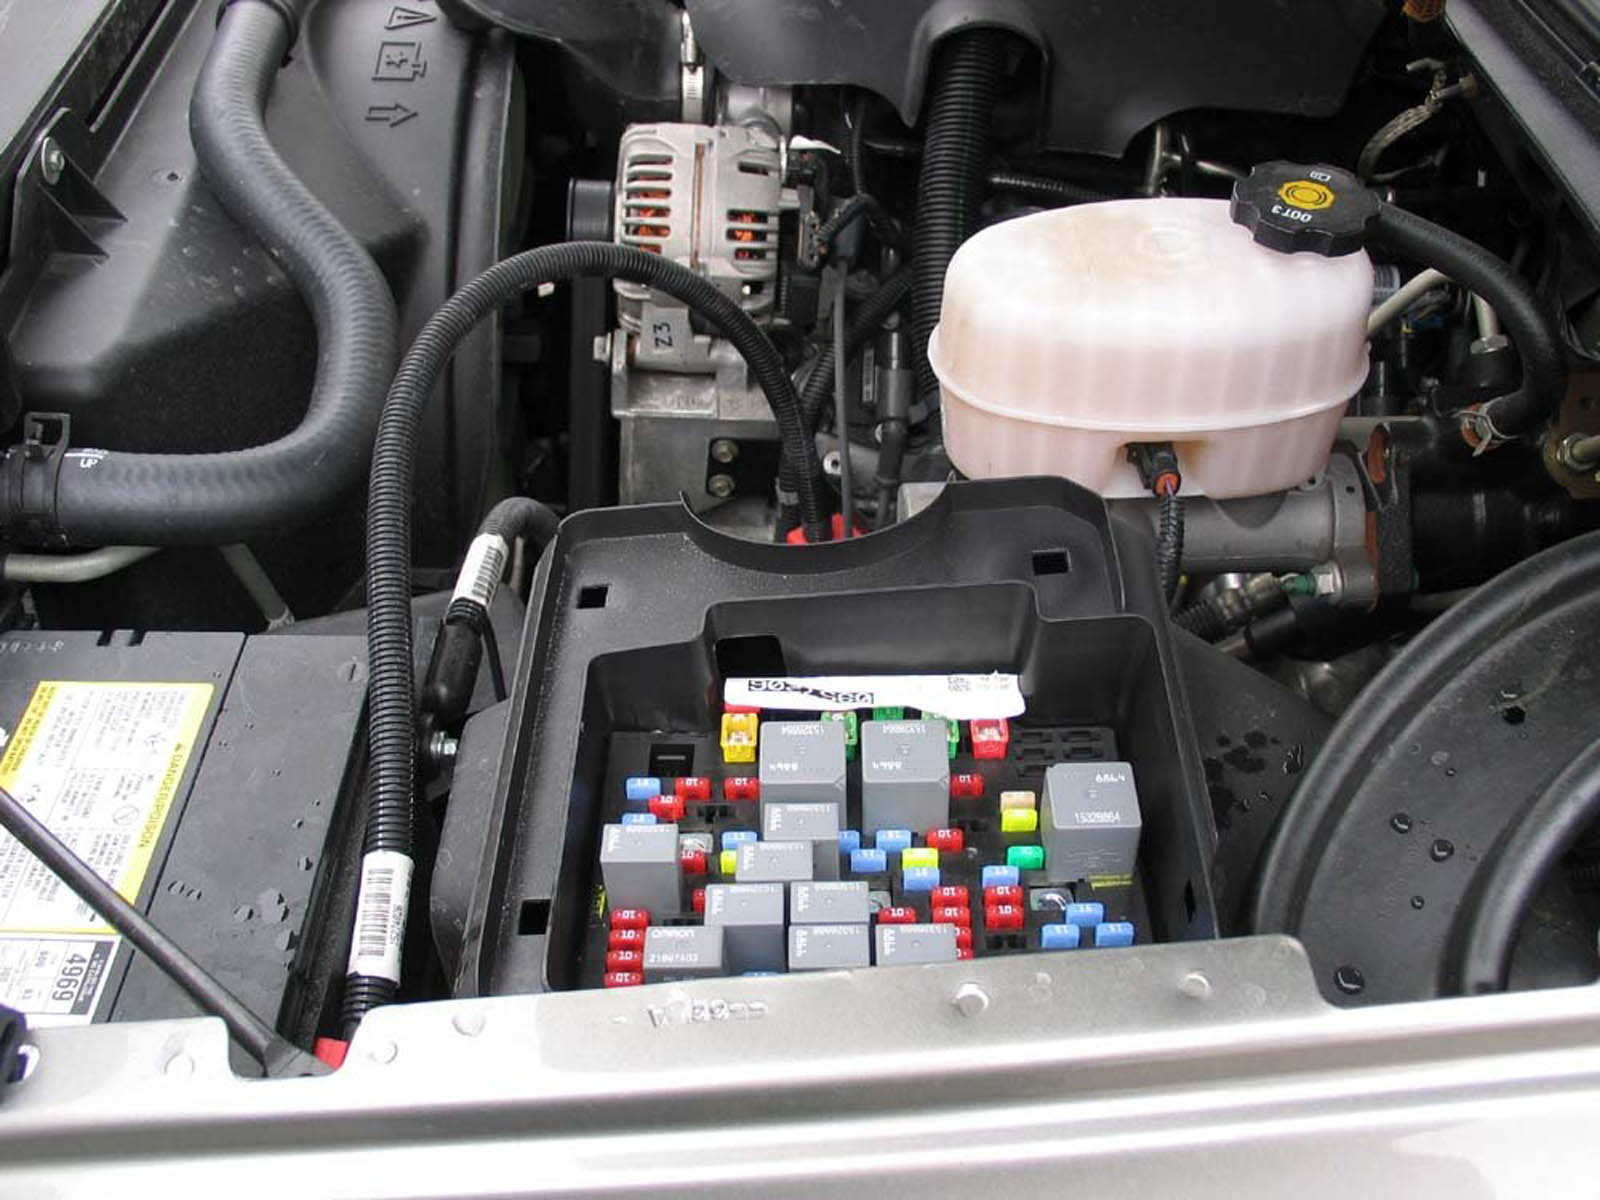 MMMay 27 Fuse Box 04 69845 chevrolet silverado gmt800 1999 2006 fuse box diagram chevroletforum 2003 Chevy Cargo Van at webbmarketing.co